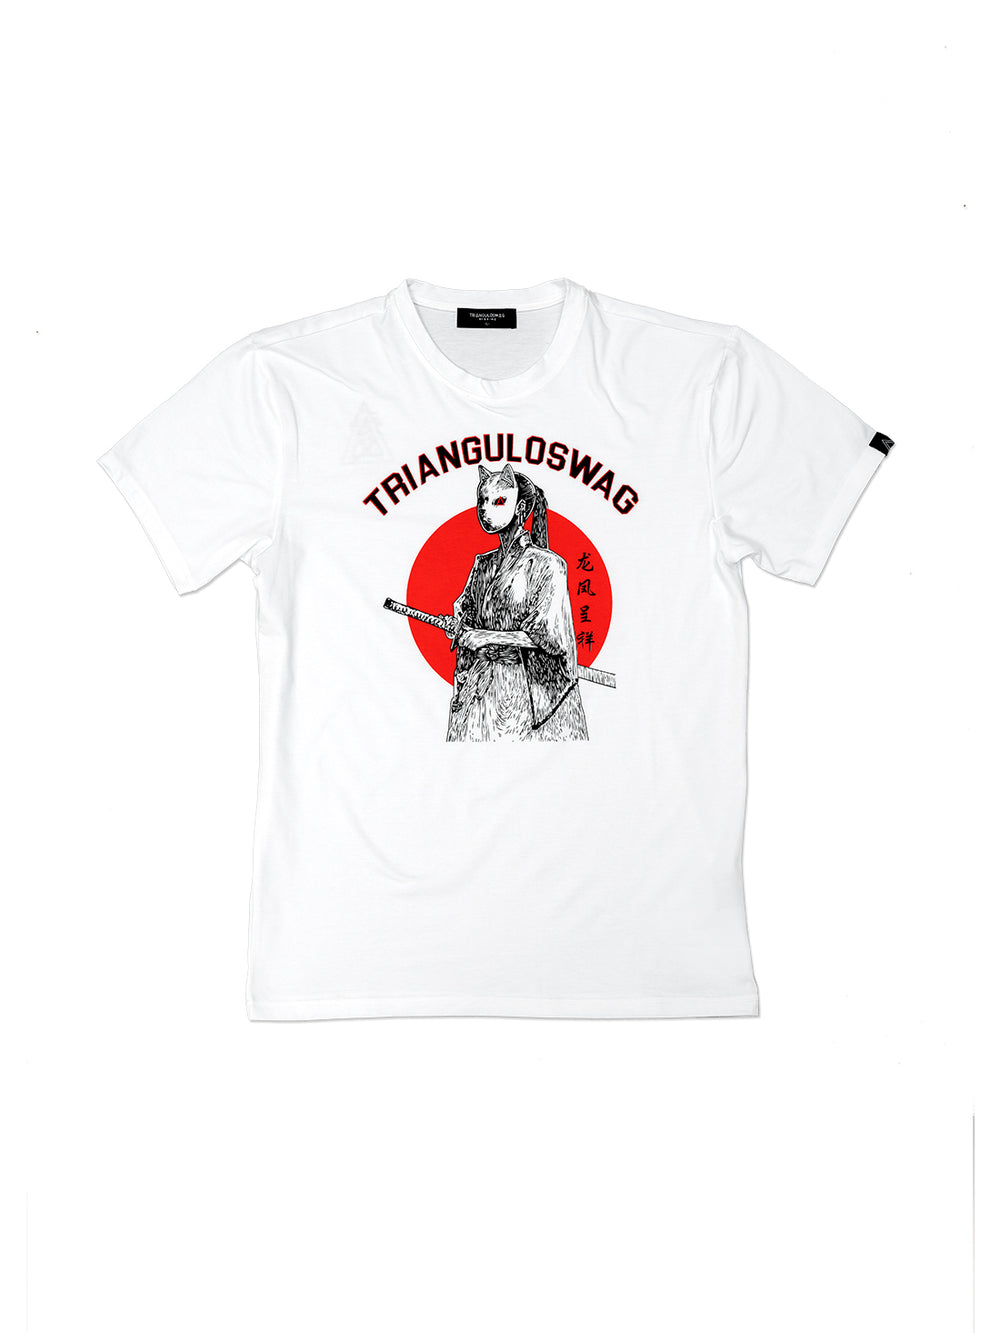 JAPAN WARRIOR tshirt - Triangulo Swag